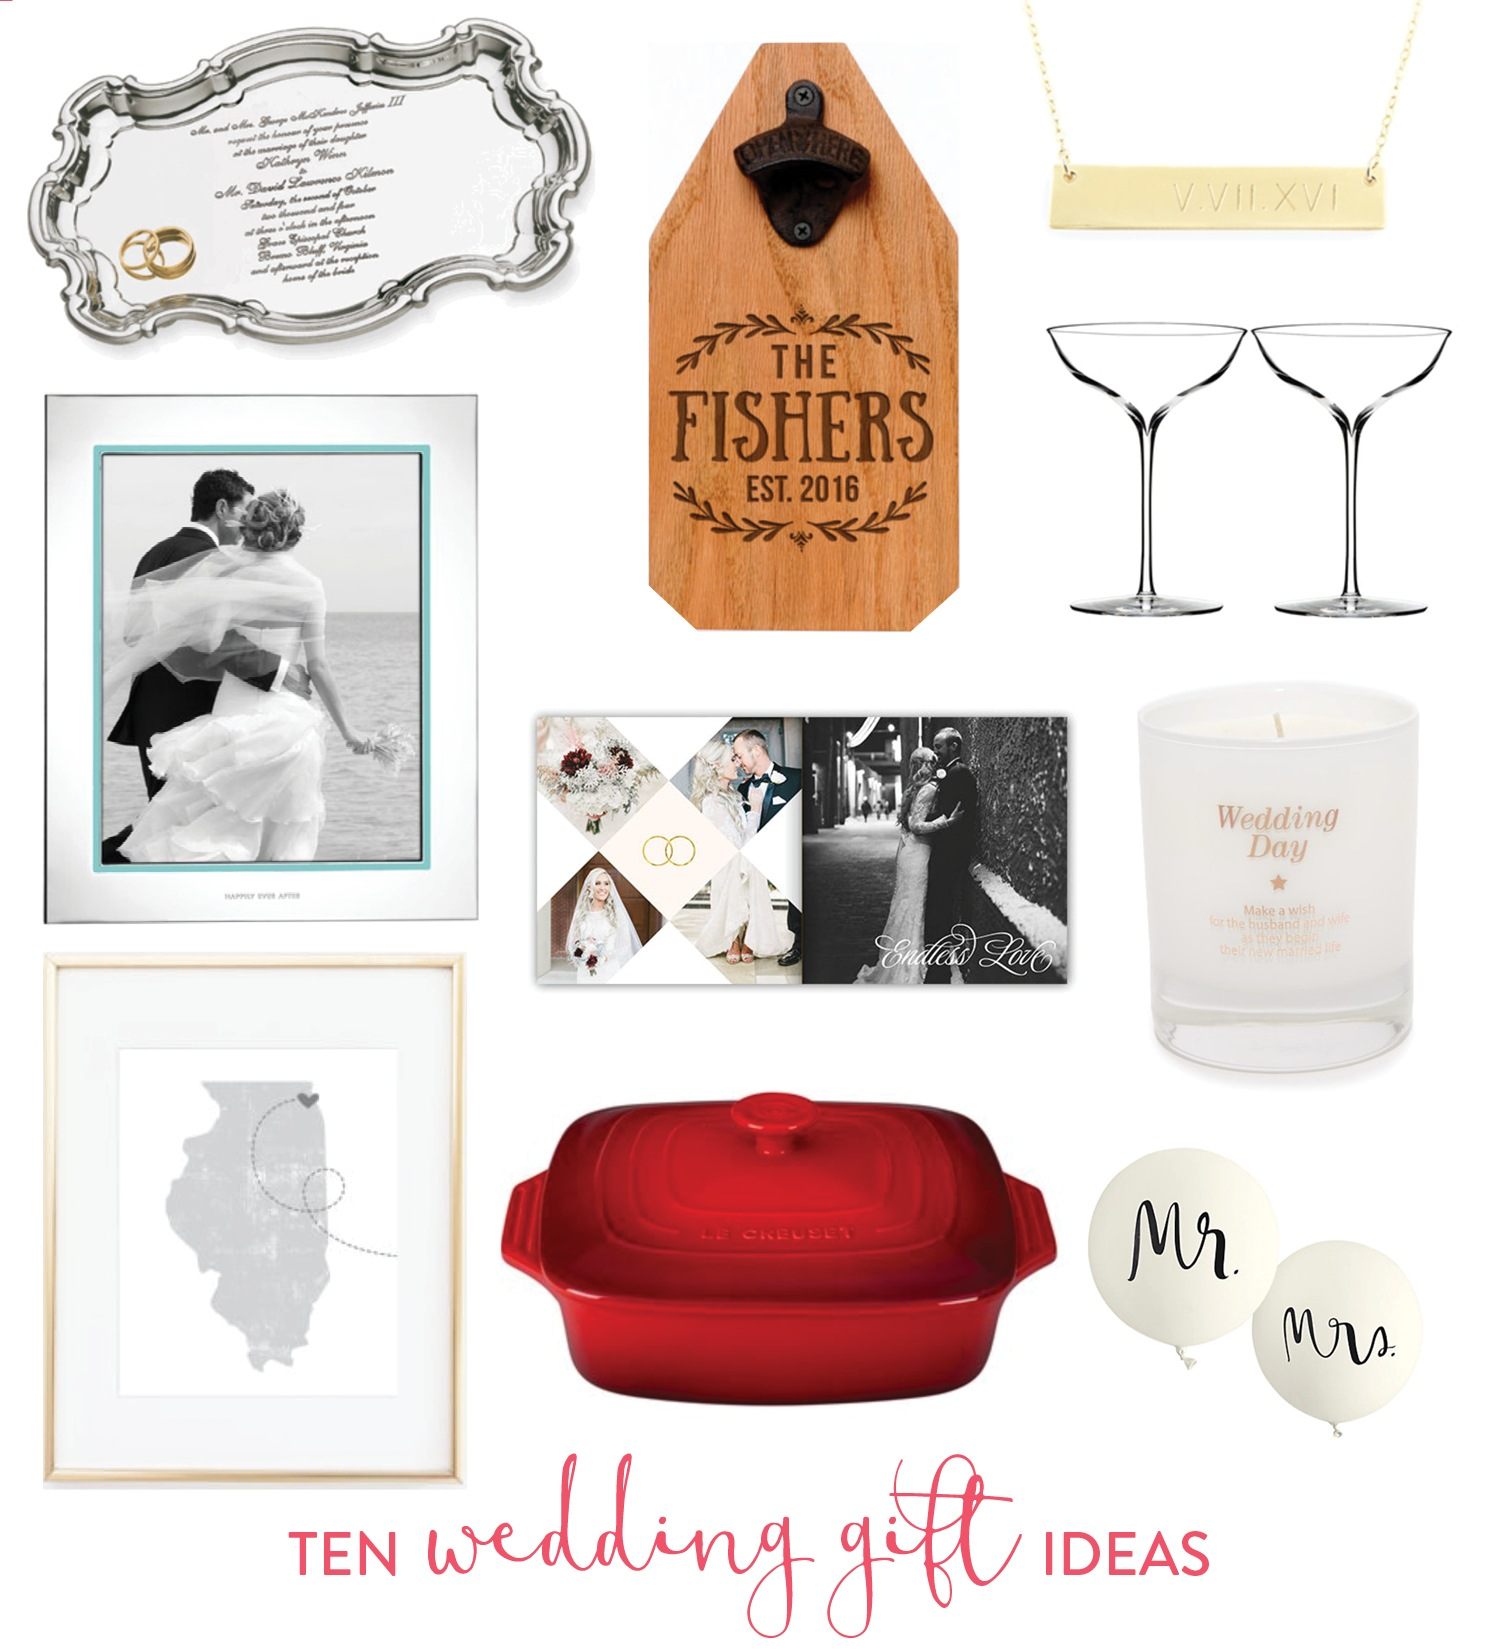 Cool Wedding Gift Ideas: 10 Wedding Gift Ideas